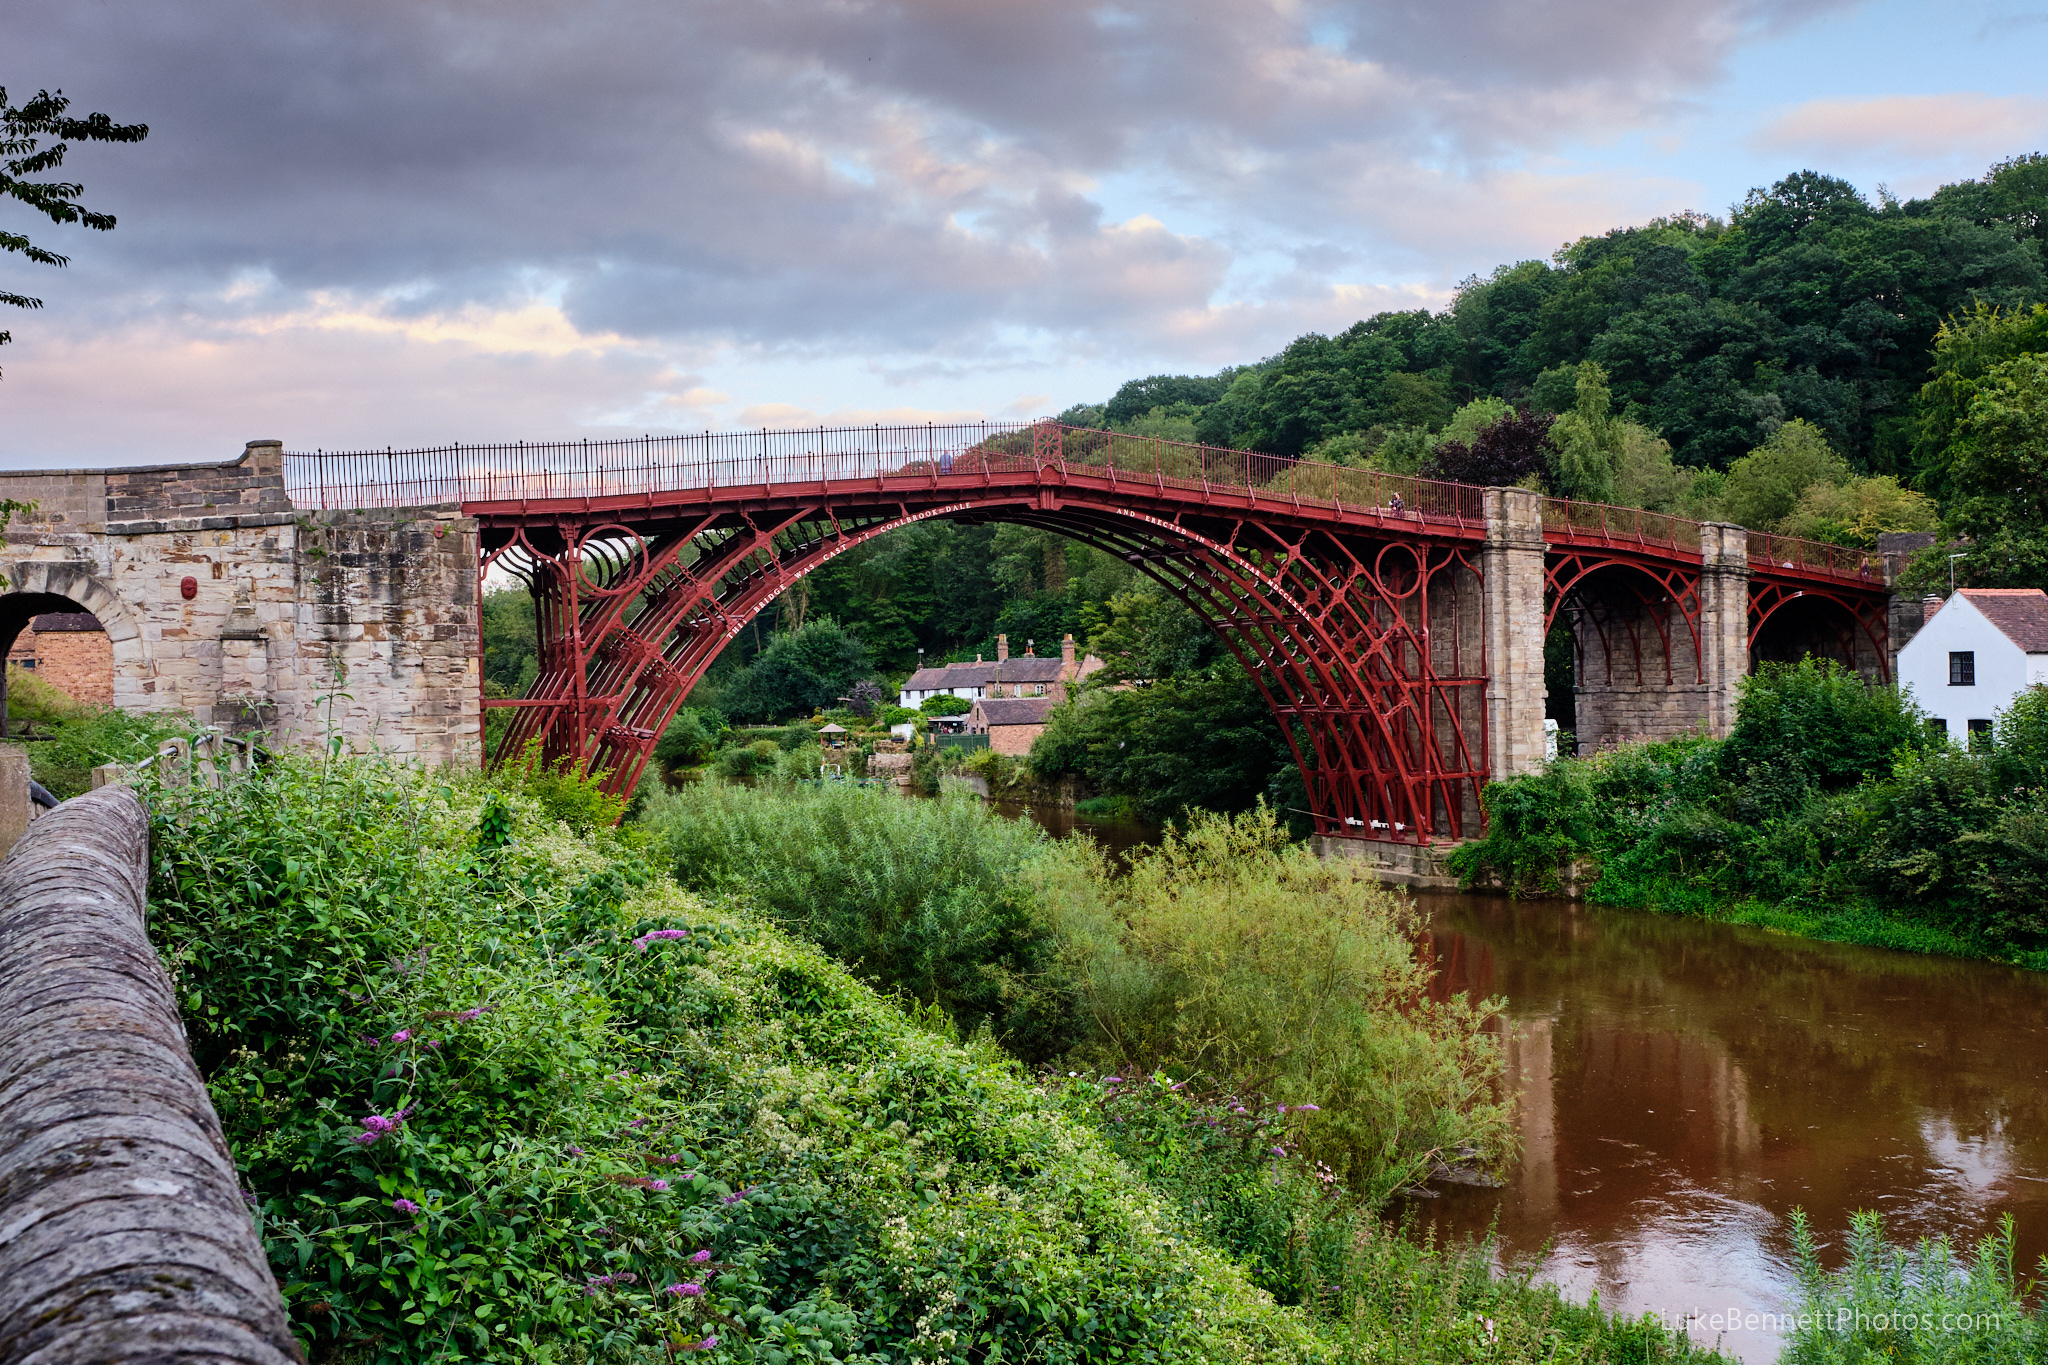 The Iron Bridge of Ironbridge